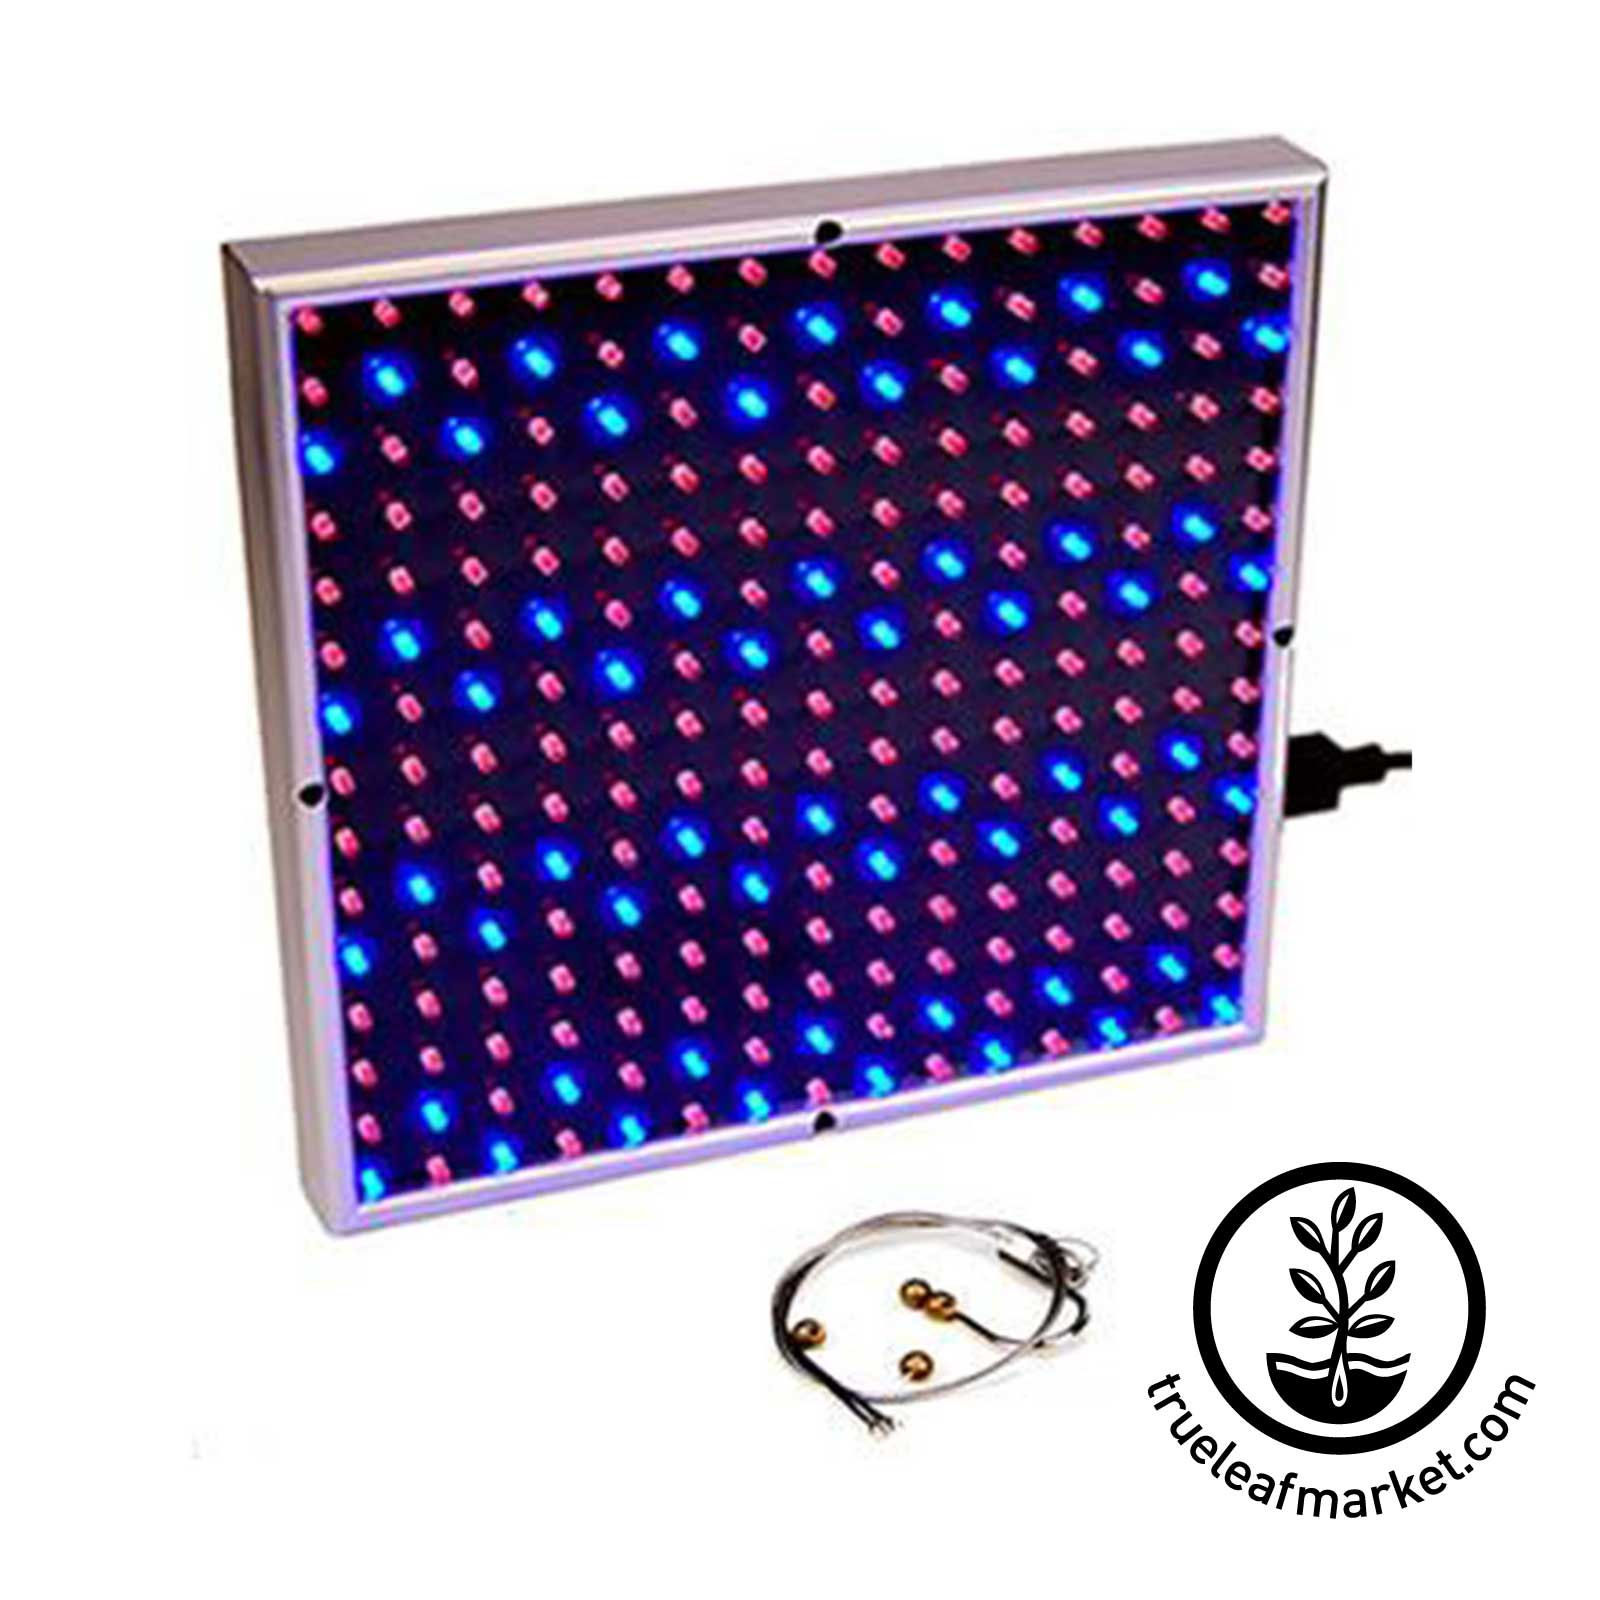 led grow light 14 watt panel plant growing lamp. Black Bedroom Furniture Sets. Home Design Ideas